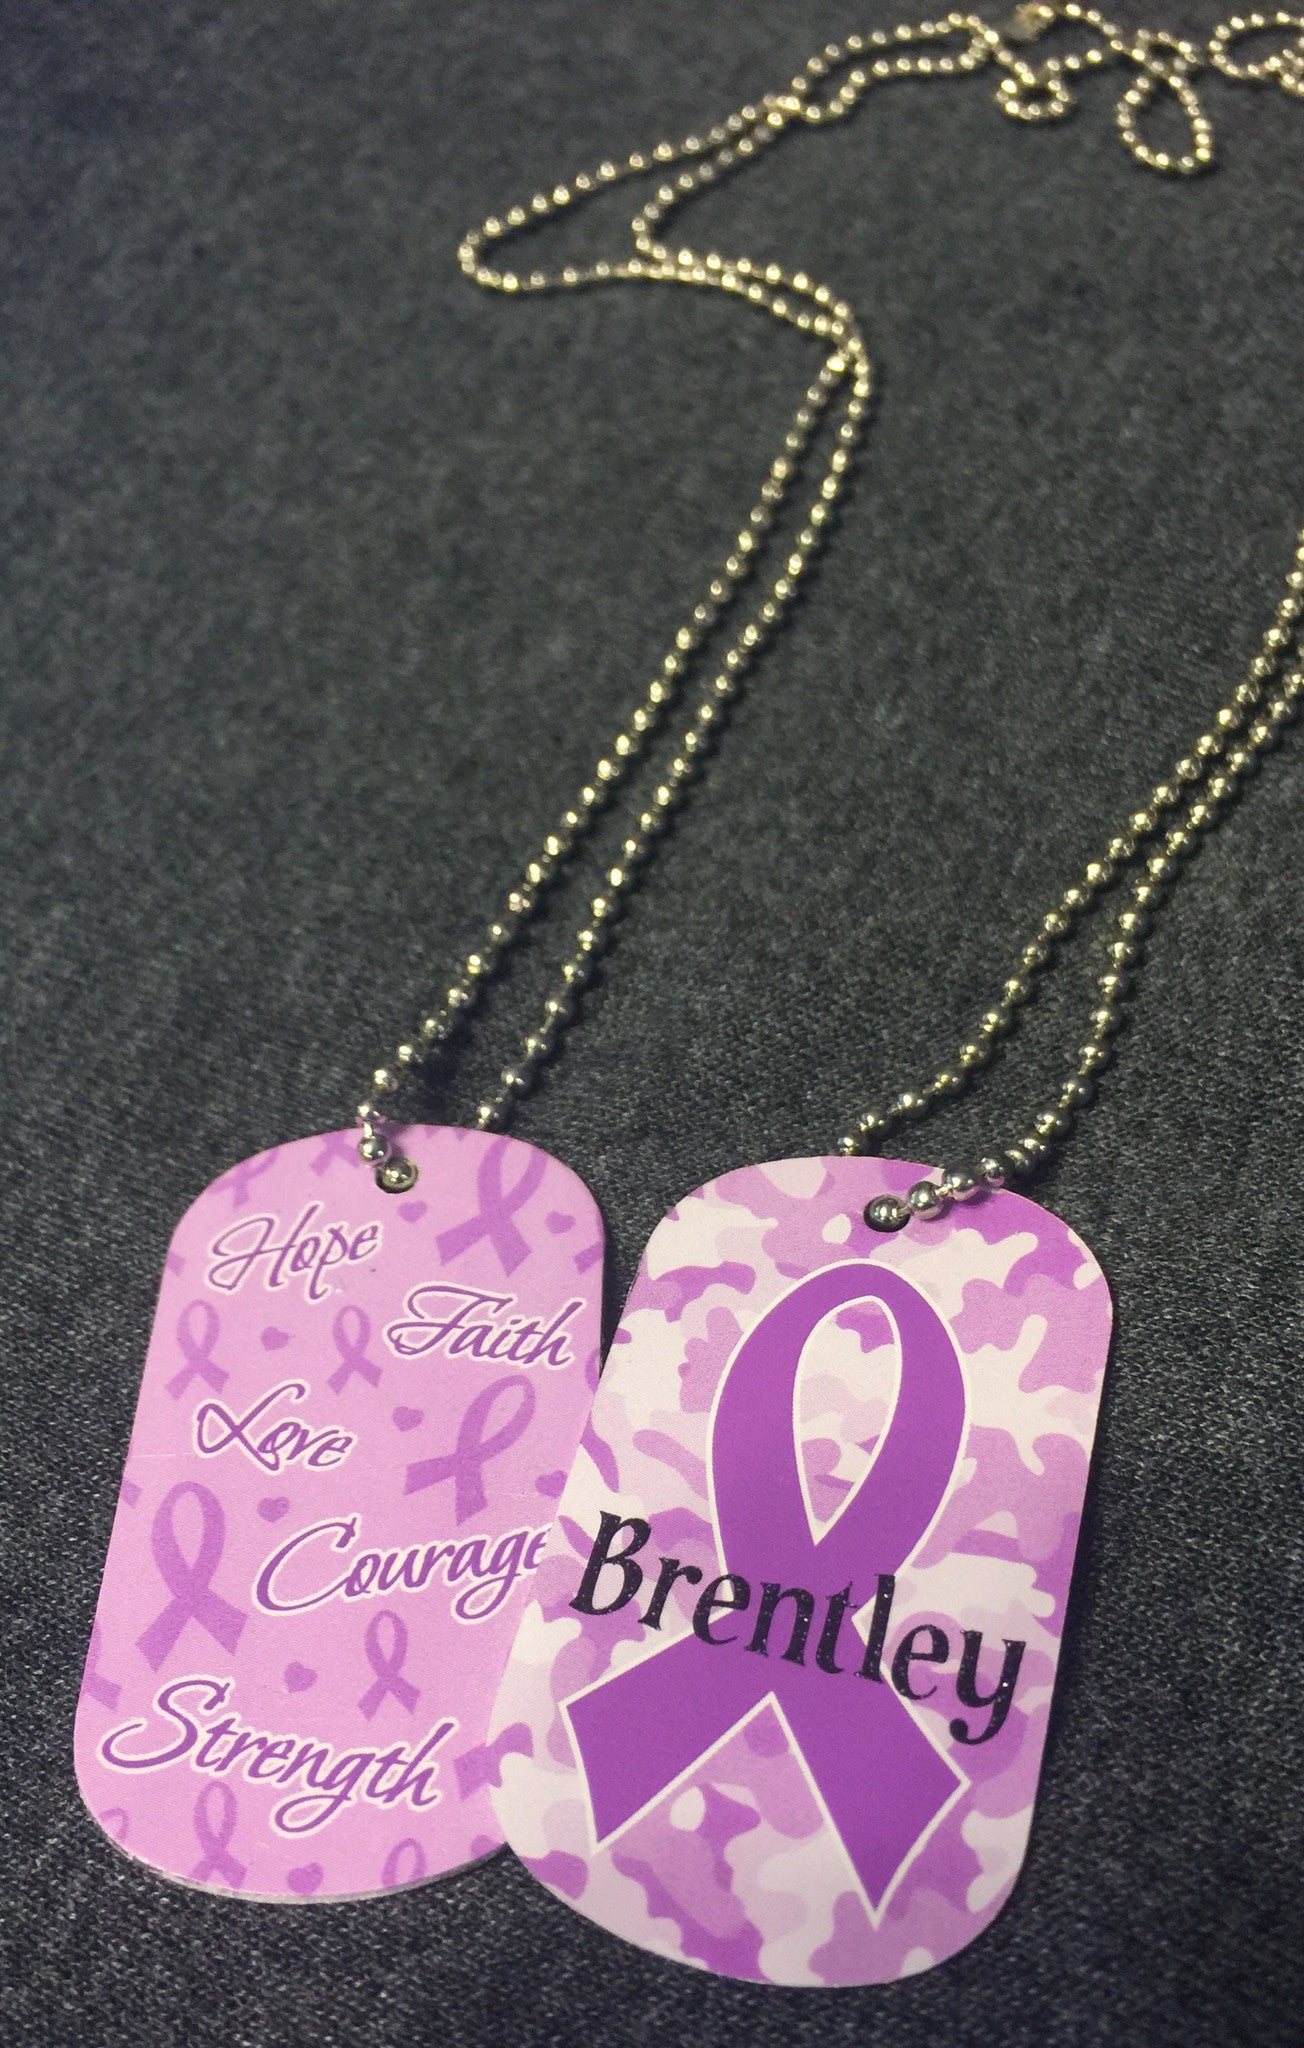 Dog tag Ribbon Awareness Necklace with custom name